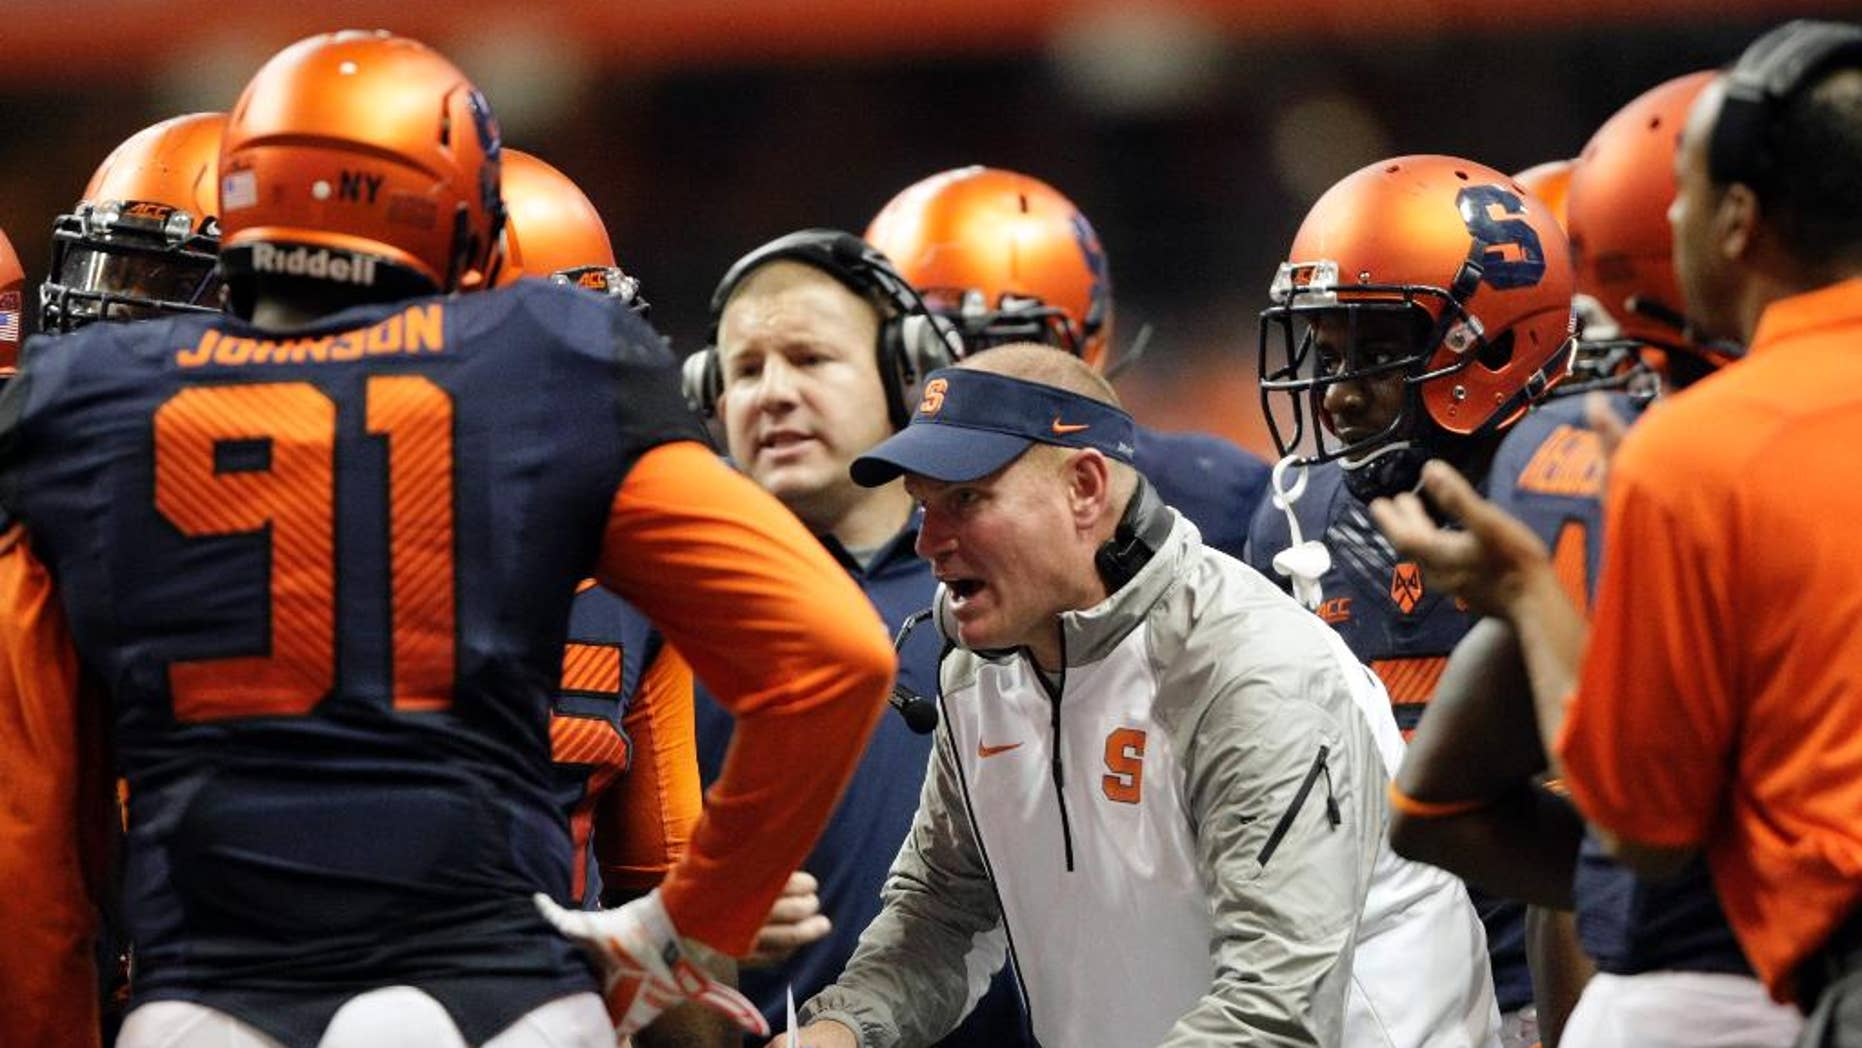 FILE - In this Oct. 3, 2014, file photo, Syracuse's head coach Scott Shafer talks to his players during a timeout in the third quarter of an NCAA college football game against Louisville in Syracuse, N.Y. Shafer has shuffled his staff as the Orange prepare to host top-ranked Florida State. (AP Photo/Nick Lisi, File)